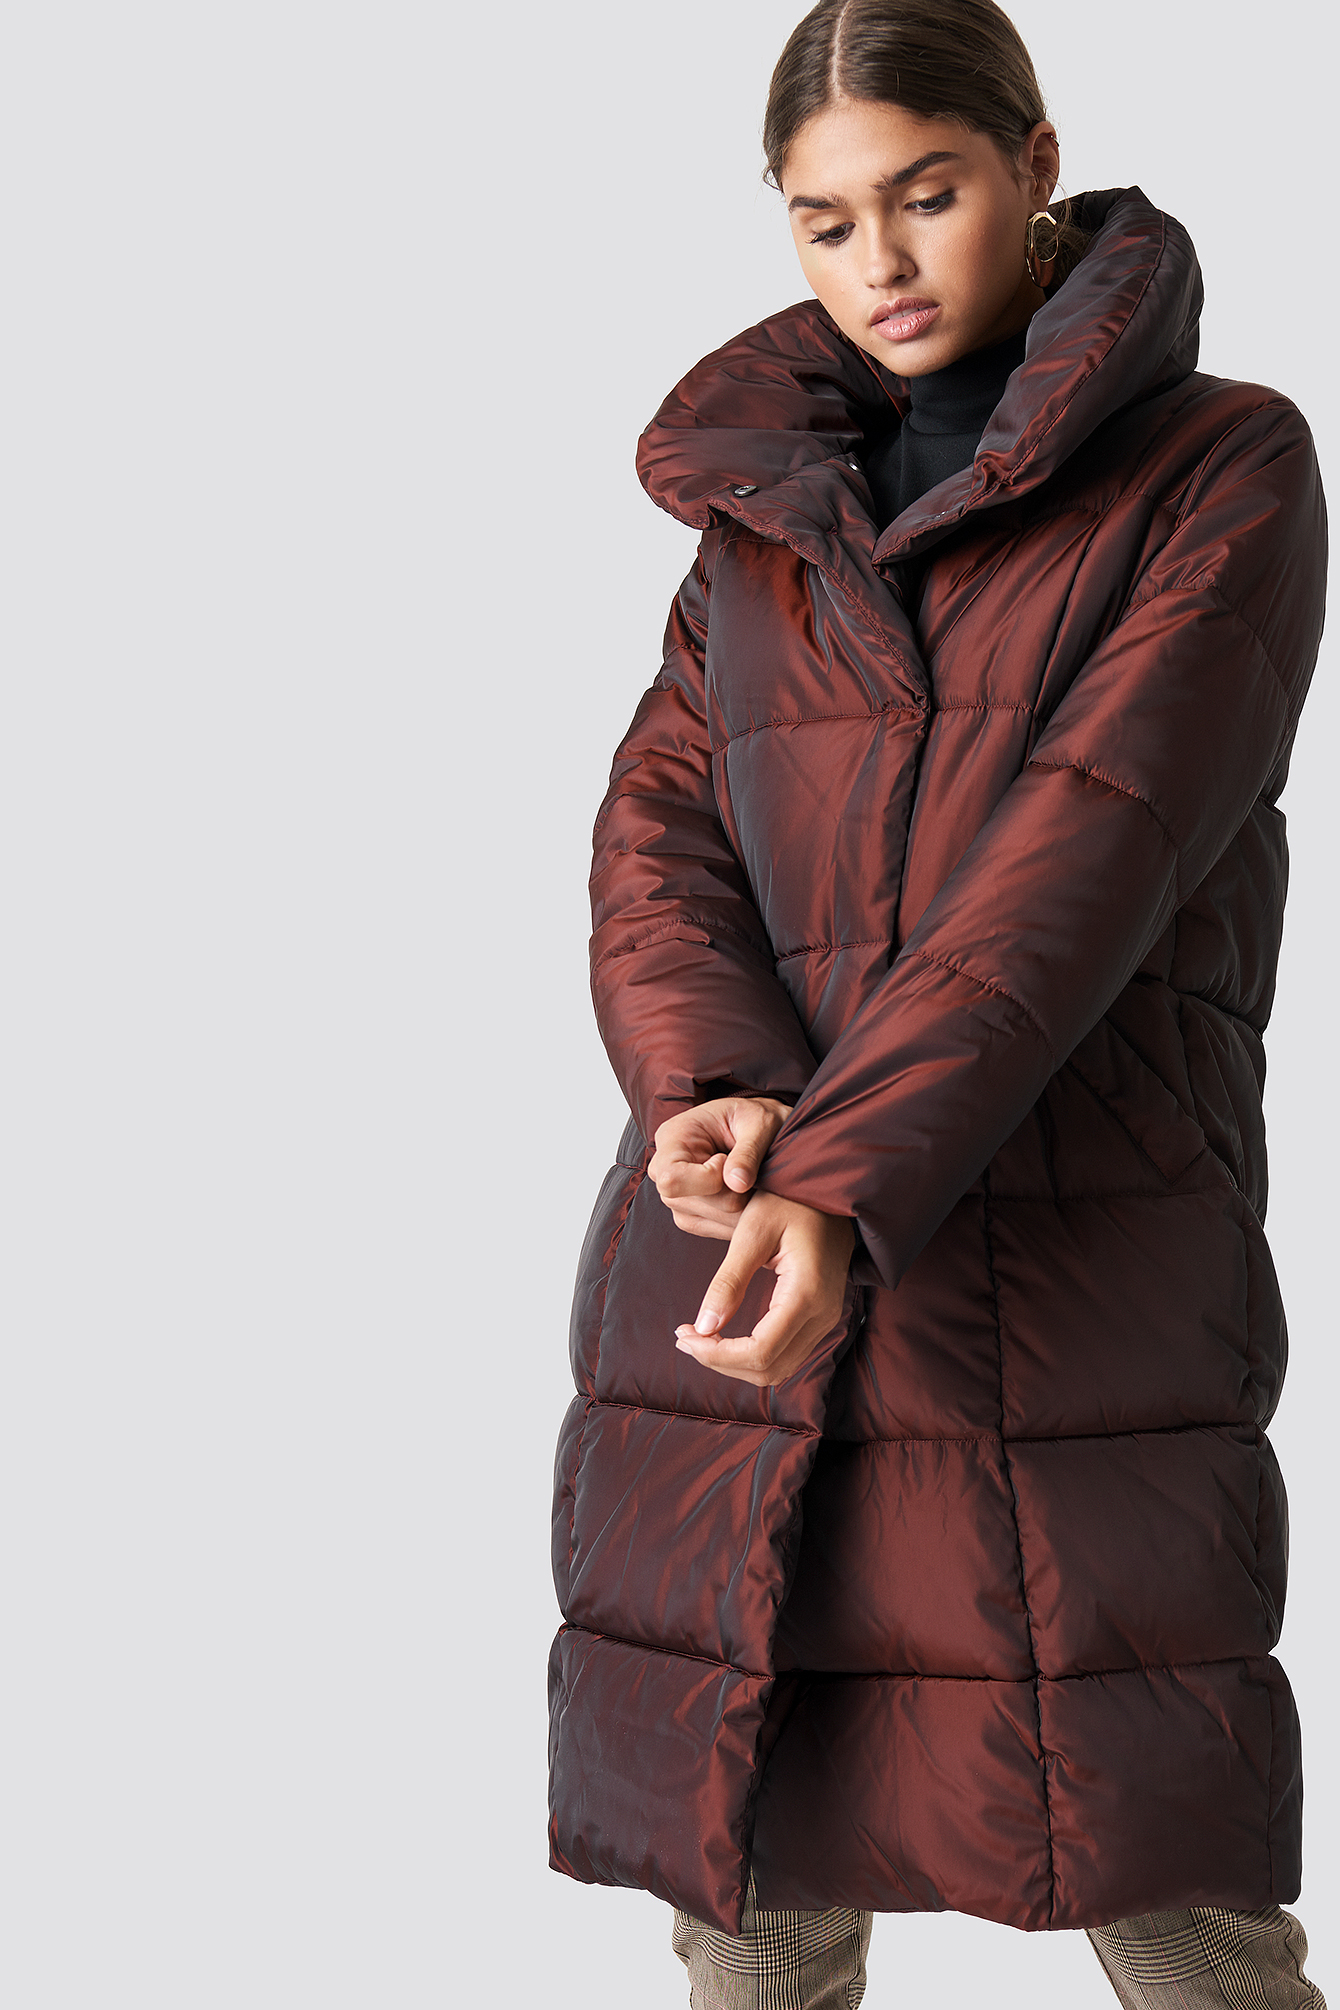 Shawl Collar Shiny Padded Jacket NA-KD.COM